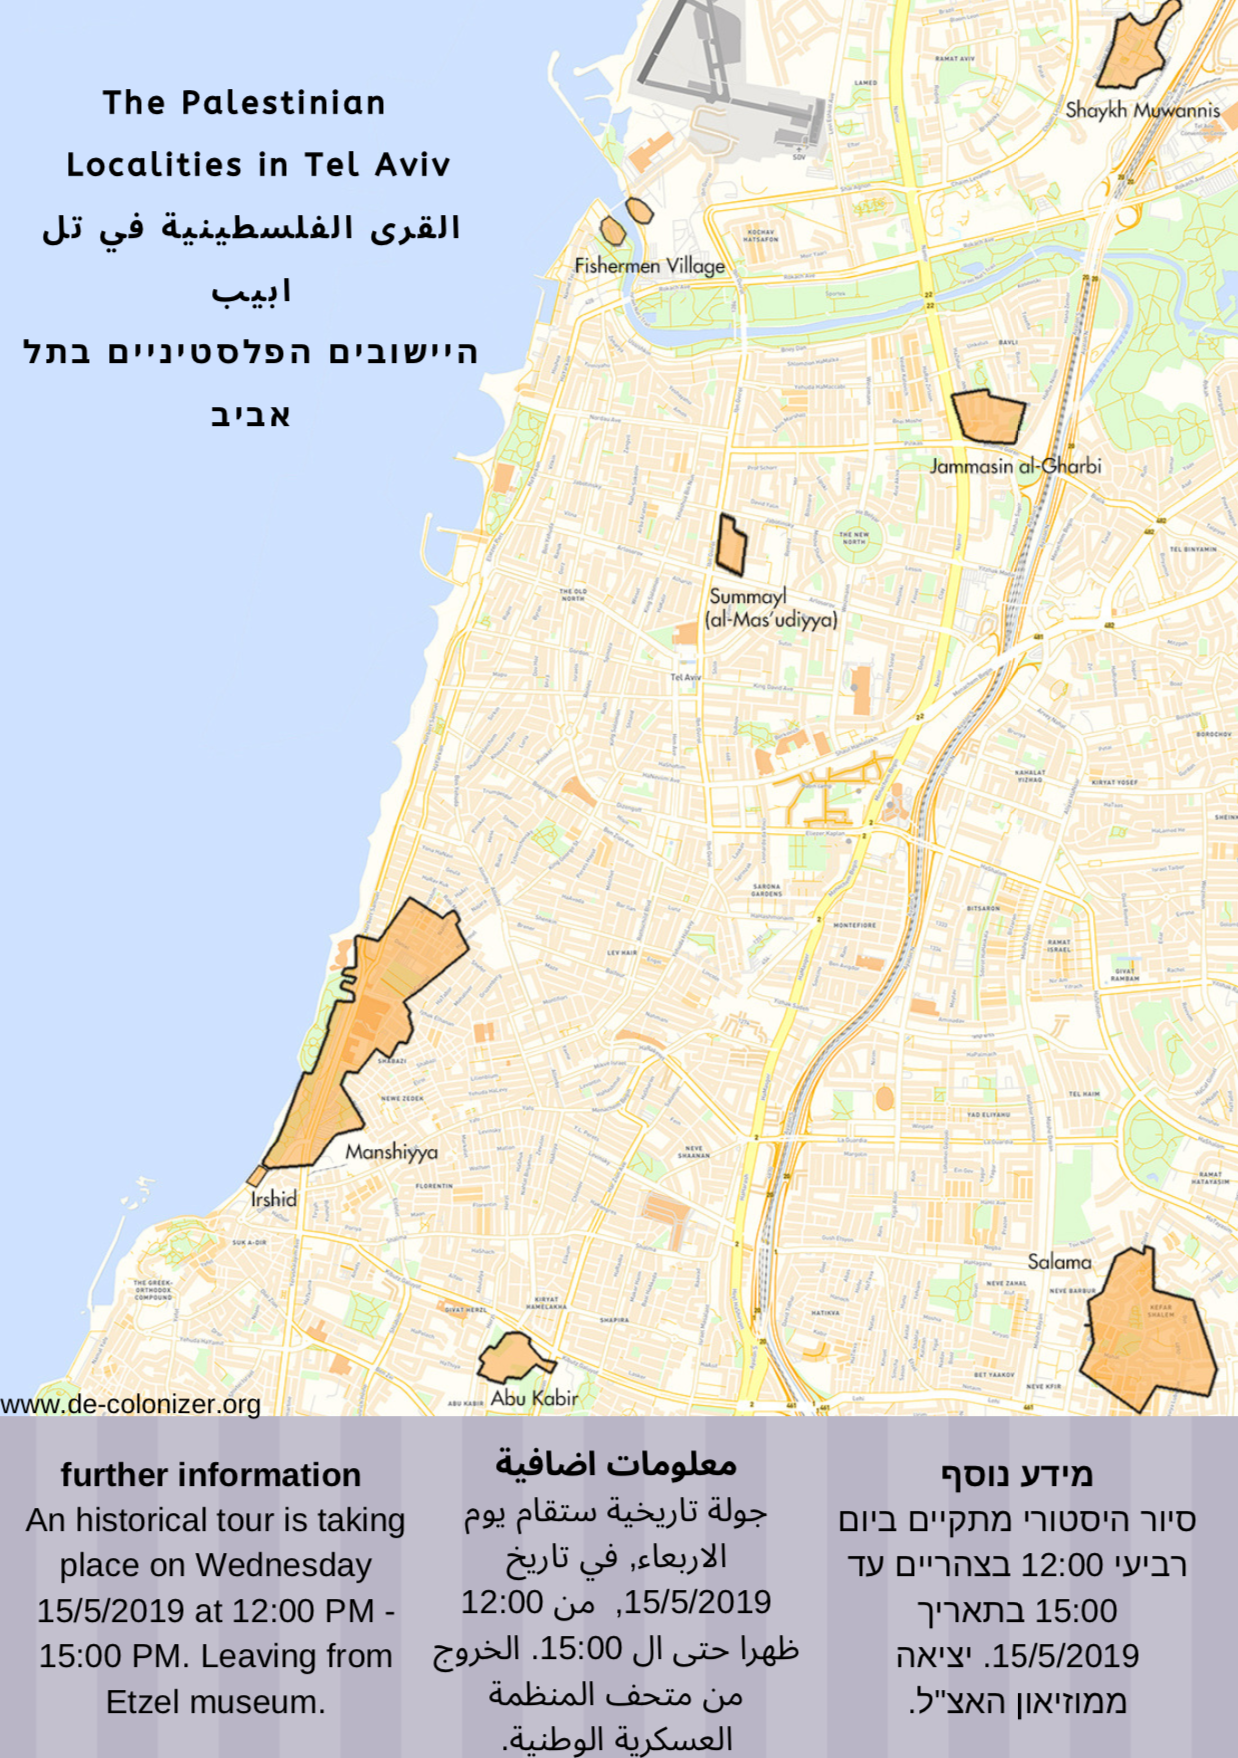 The destroyed Palestinian localities